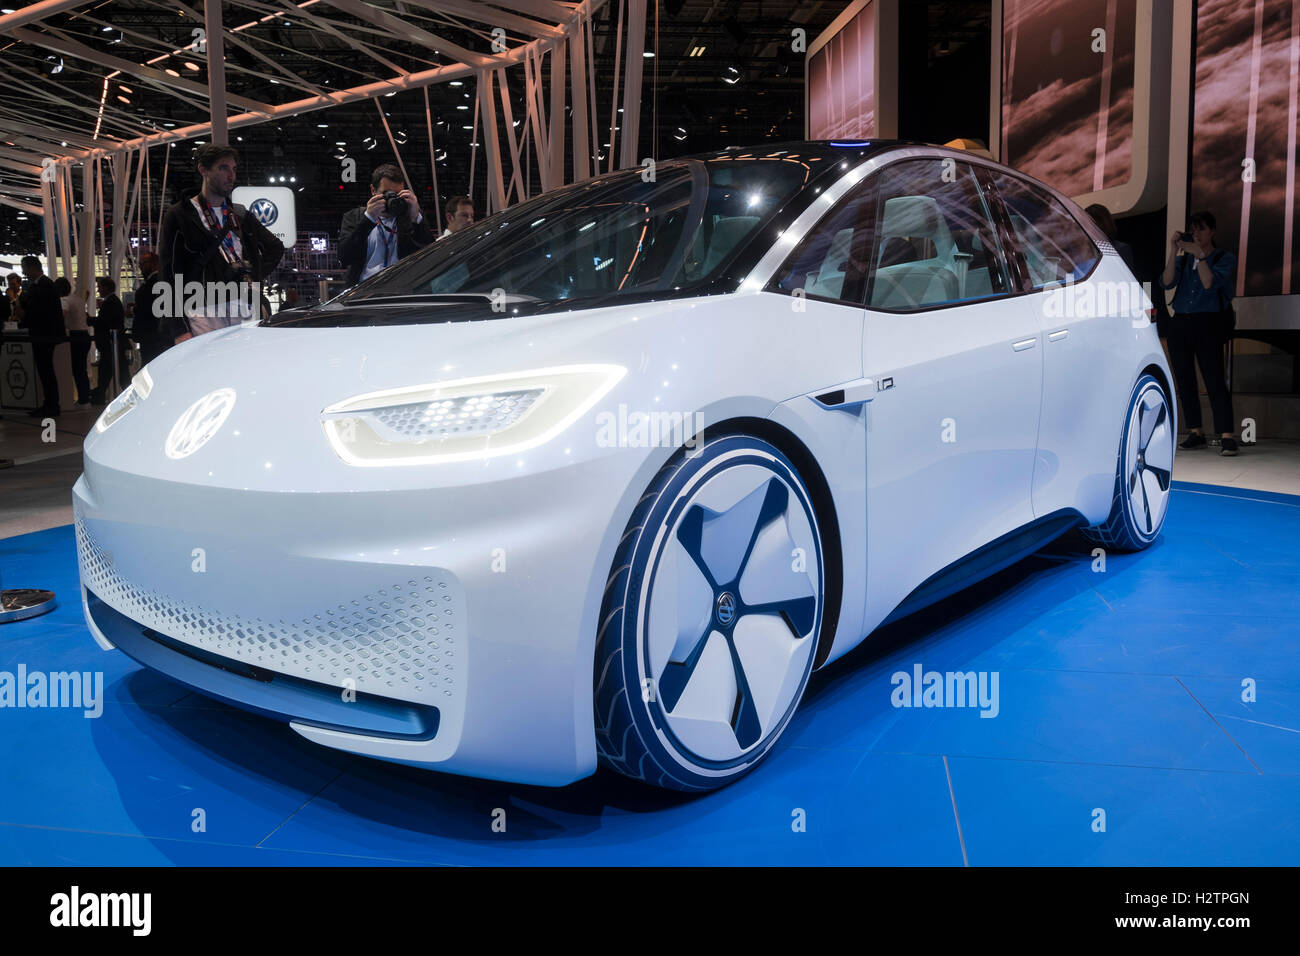 New Volkswagen ID electric plug-in concept vehicle at Paris Motor Show 2016 - Stock Image